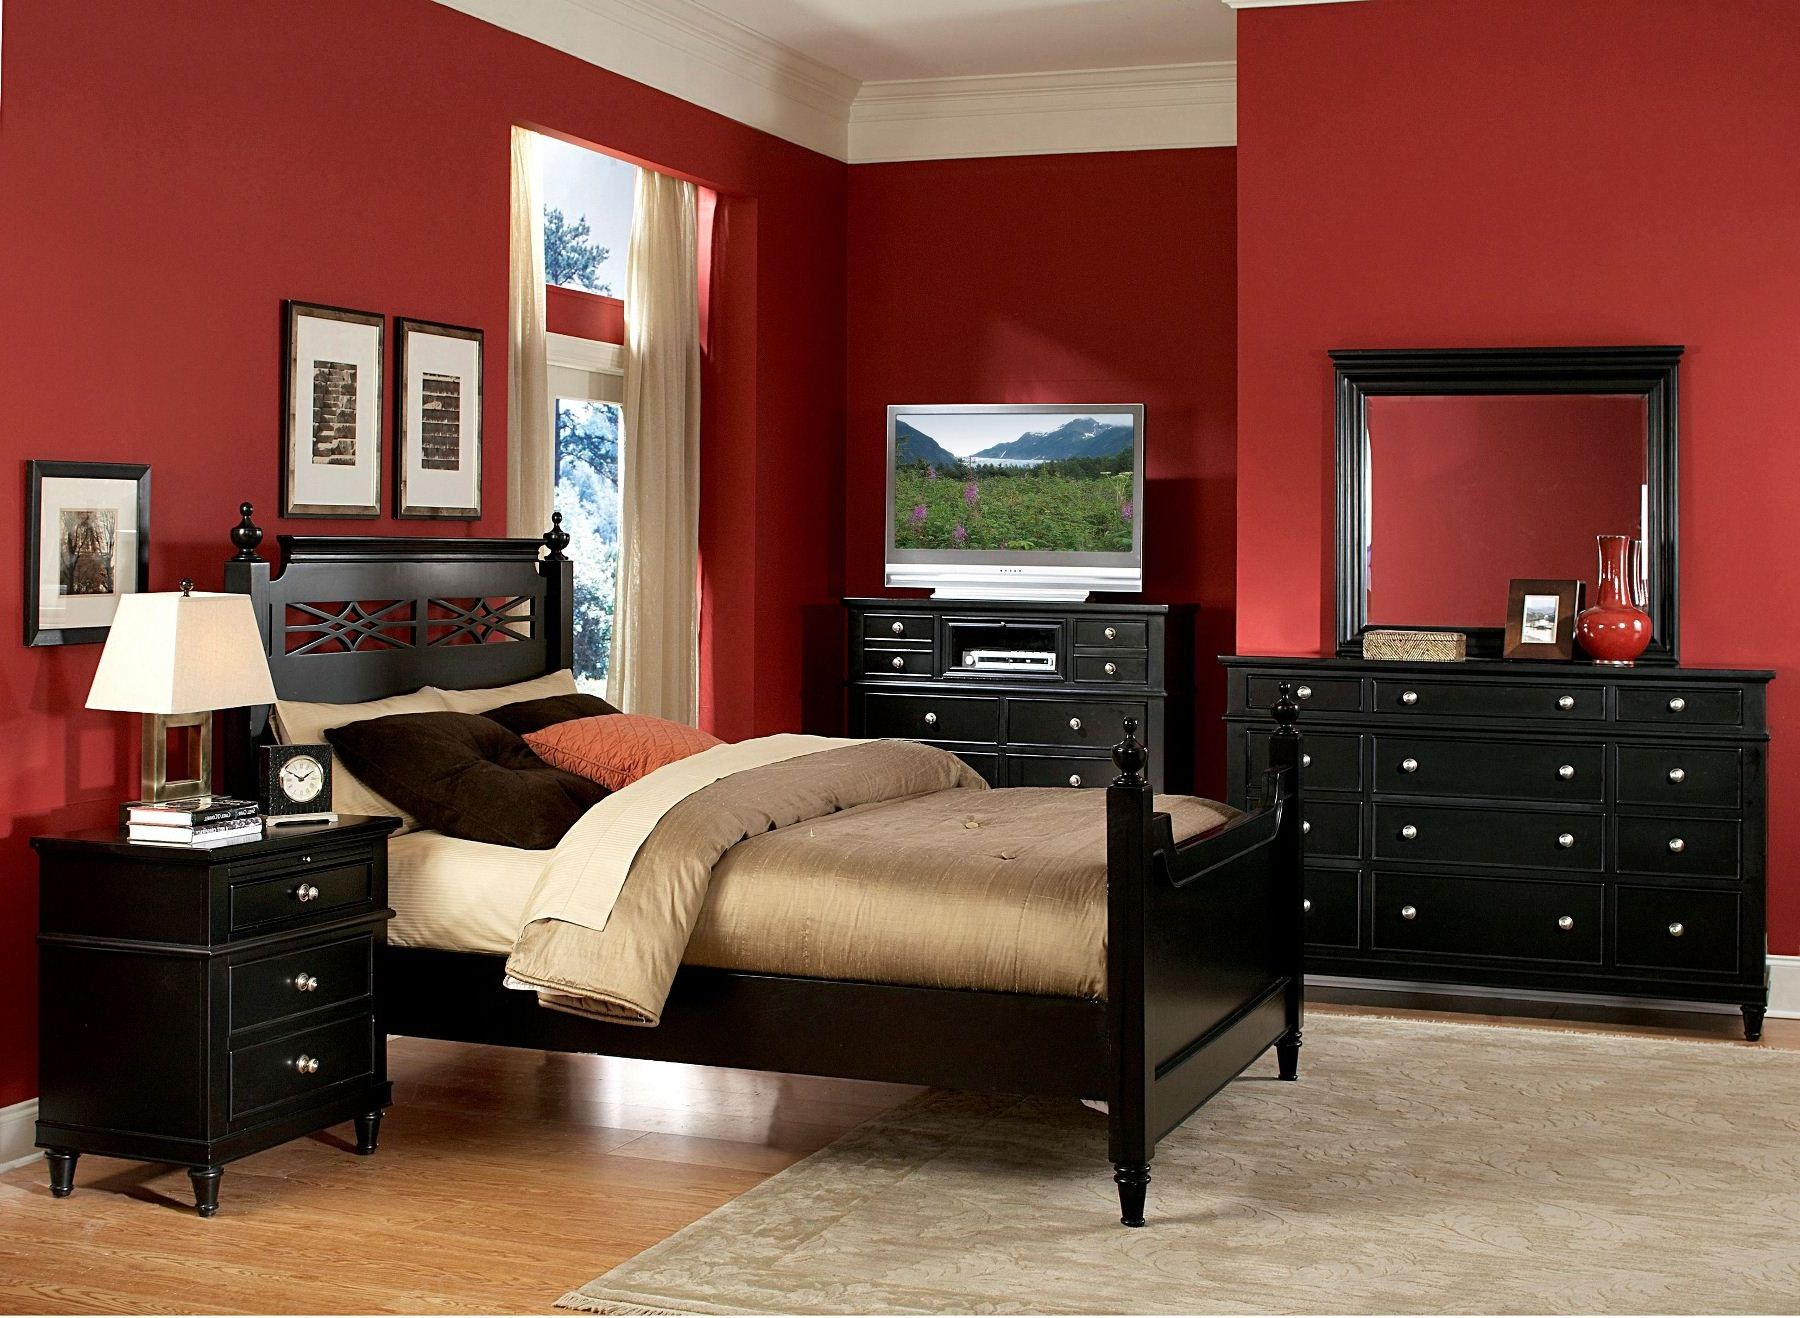 creative-red-black-and-cream-bedroom-designs-77-remodel-inspirational-home-decorating-with-red-black-and-cream-bedroom-designs